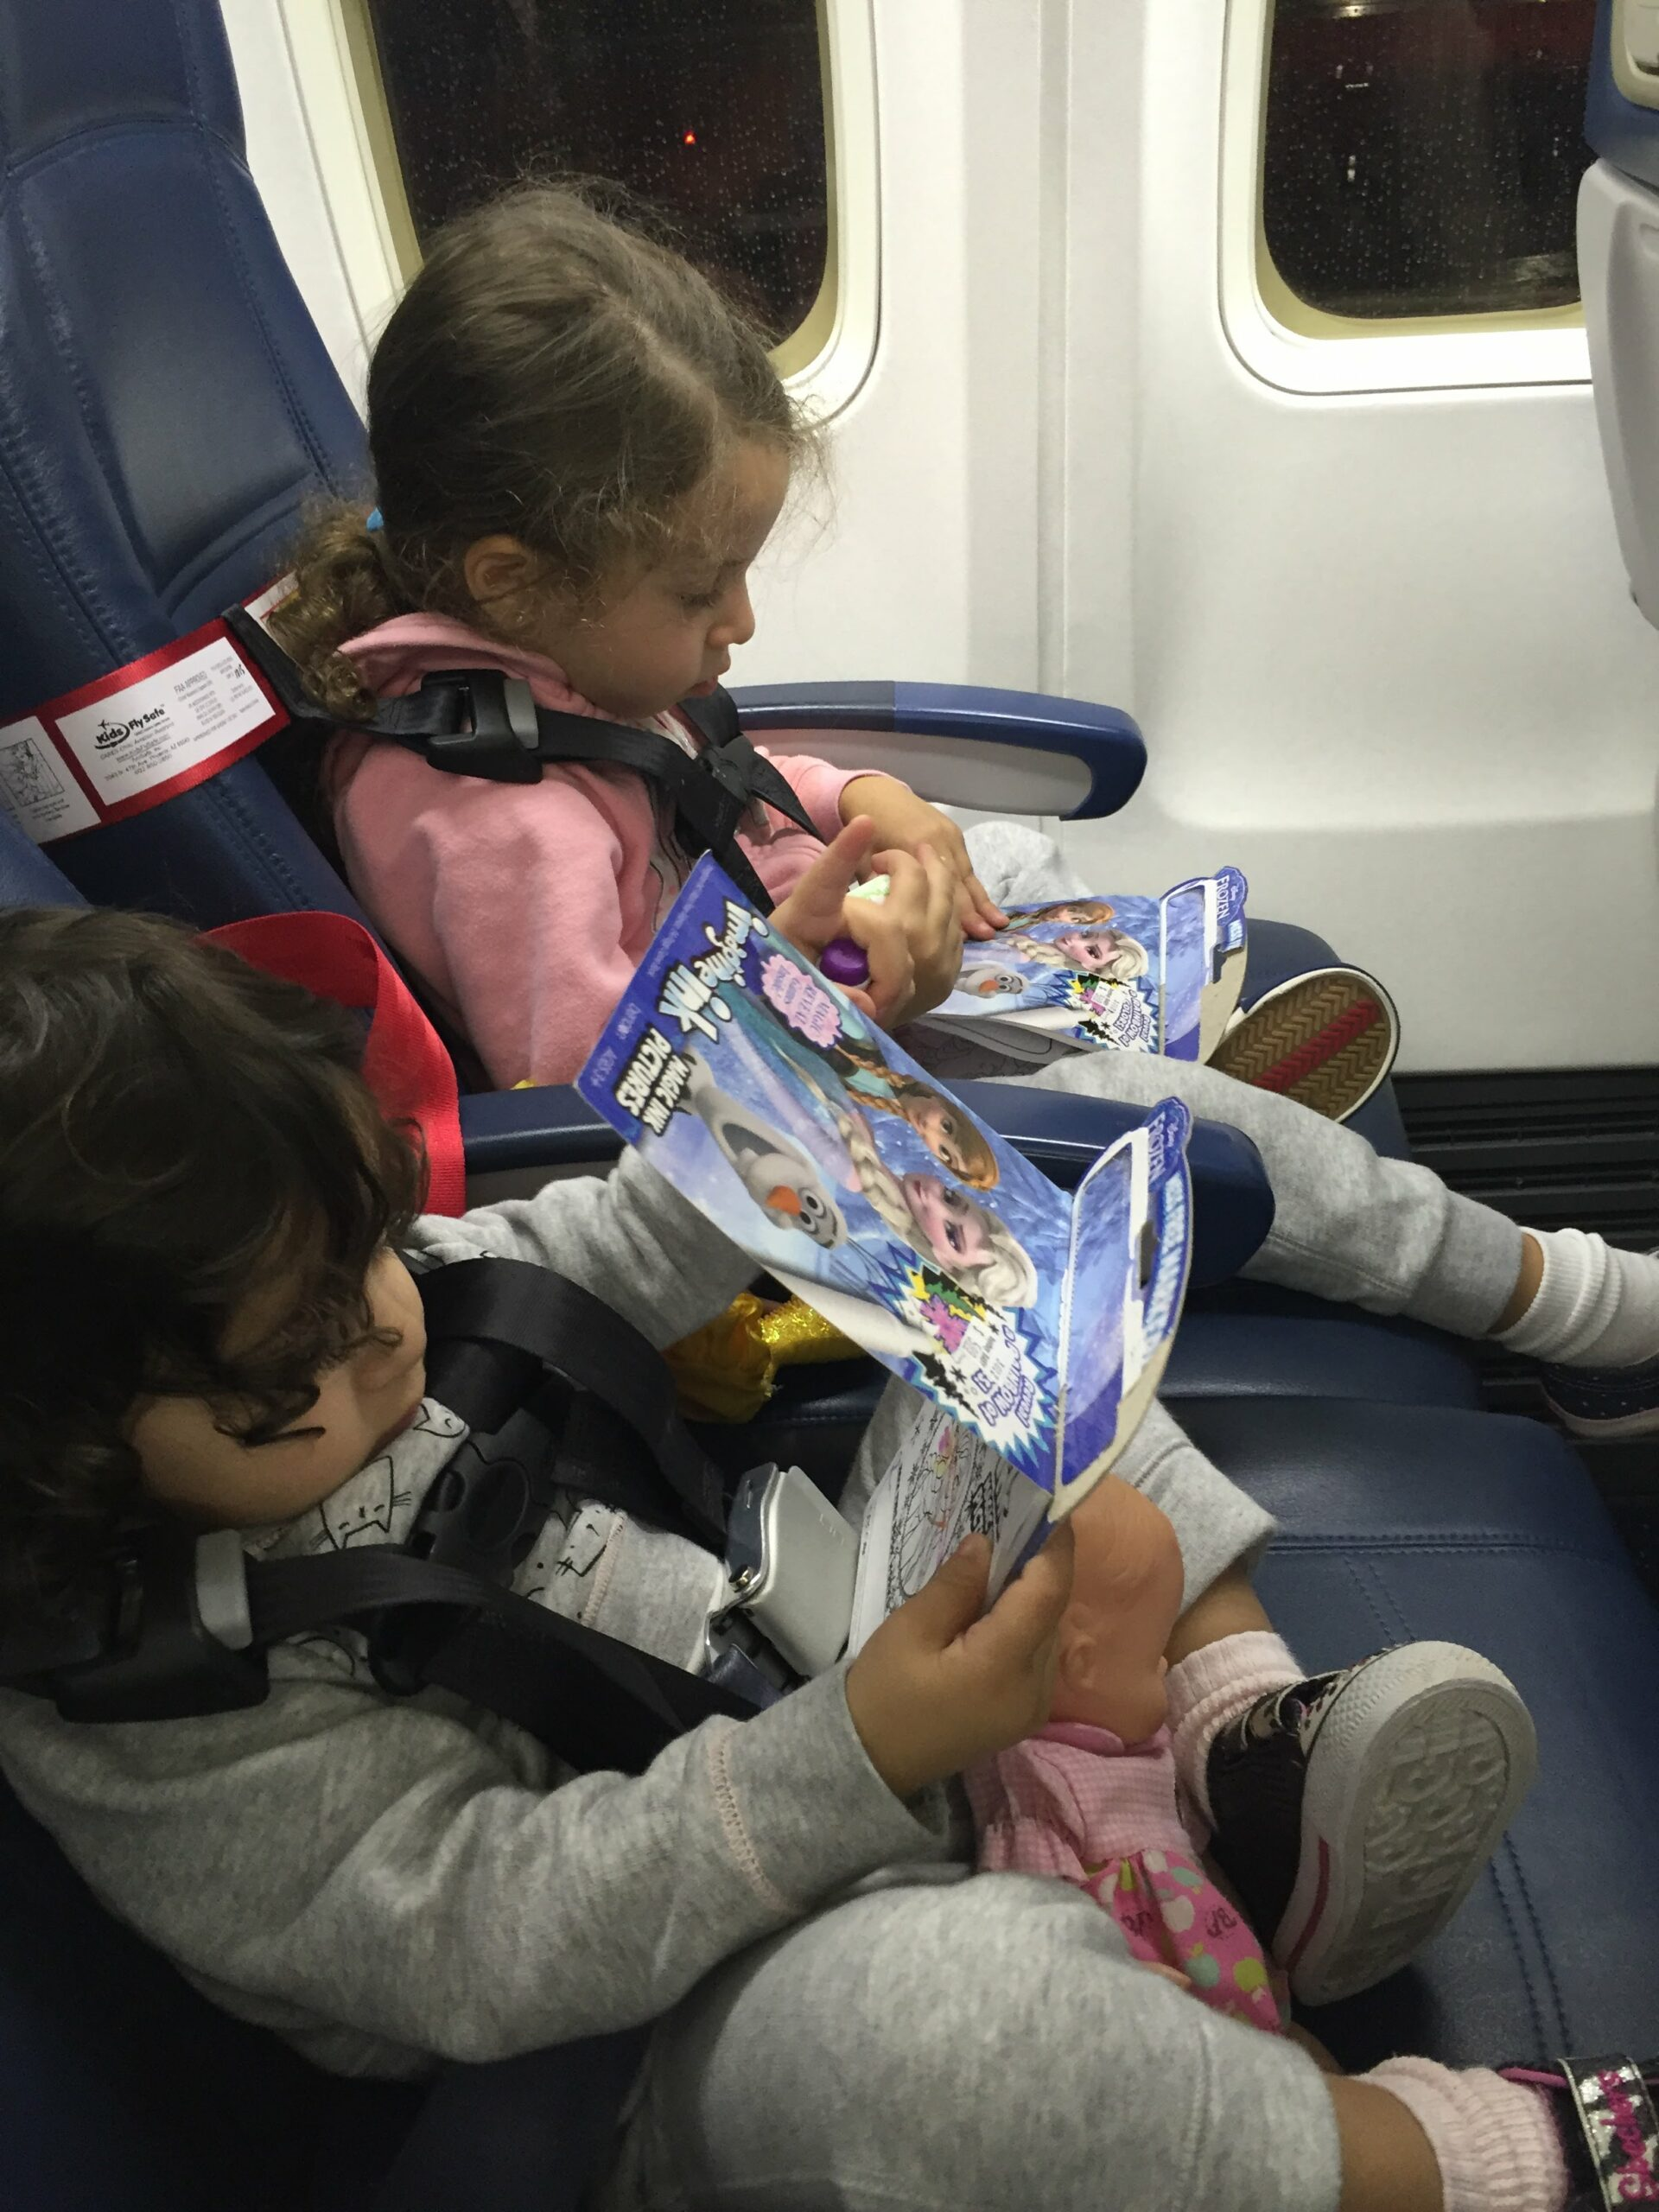 (more than) 5 Fun Travel Activities that don't involve Screen-Time